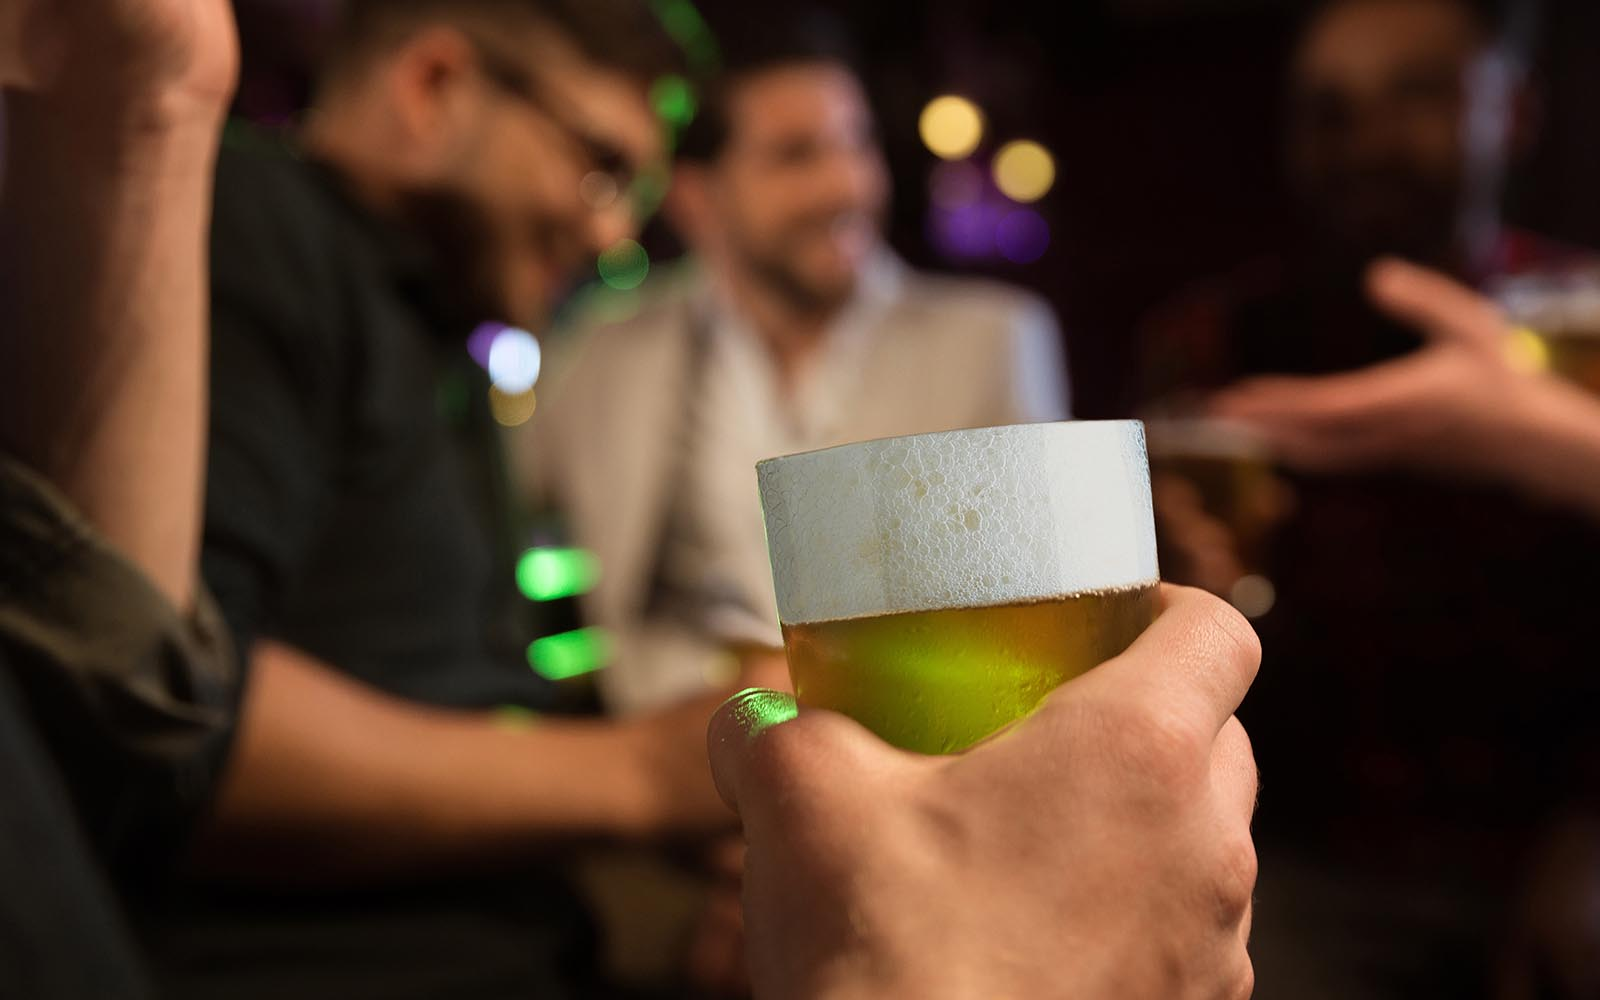 Close-up Of Man's Hand Holding Glass Of Beer While Sitting At The Bar Counter